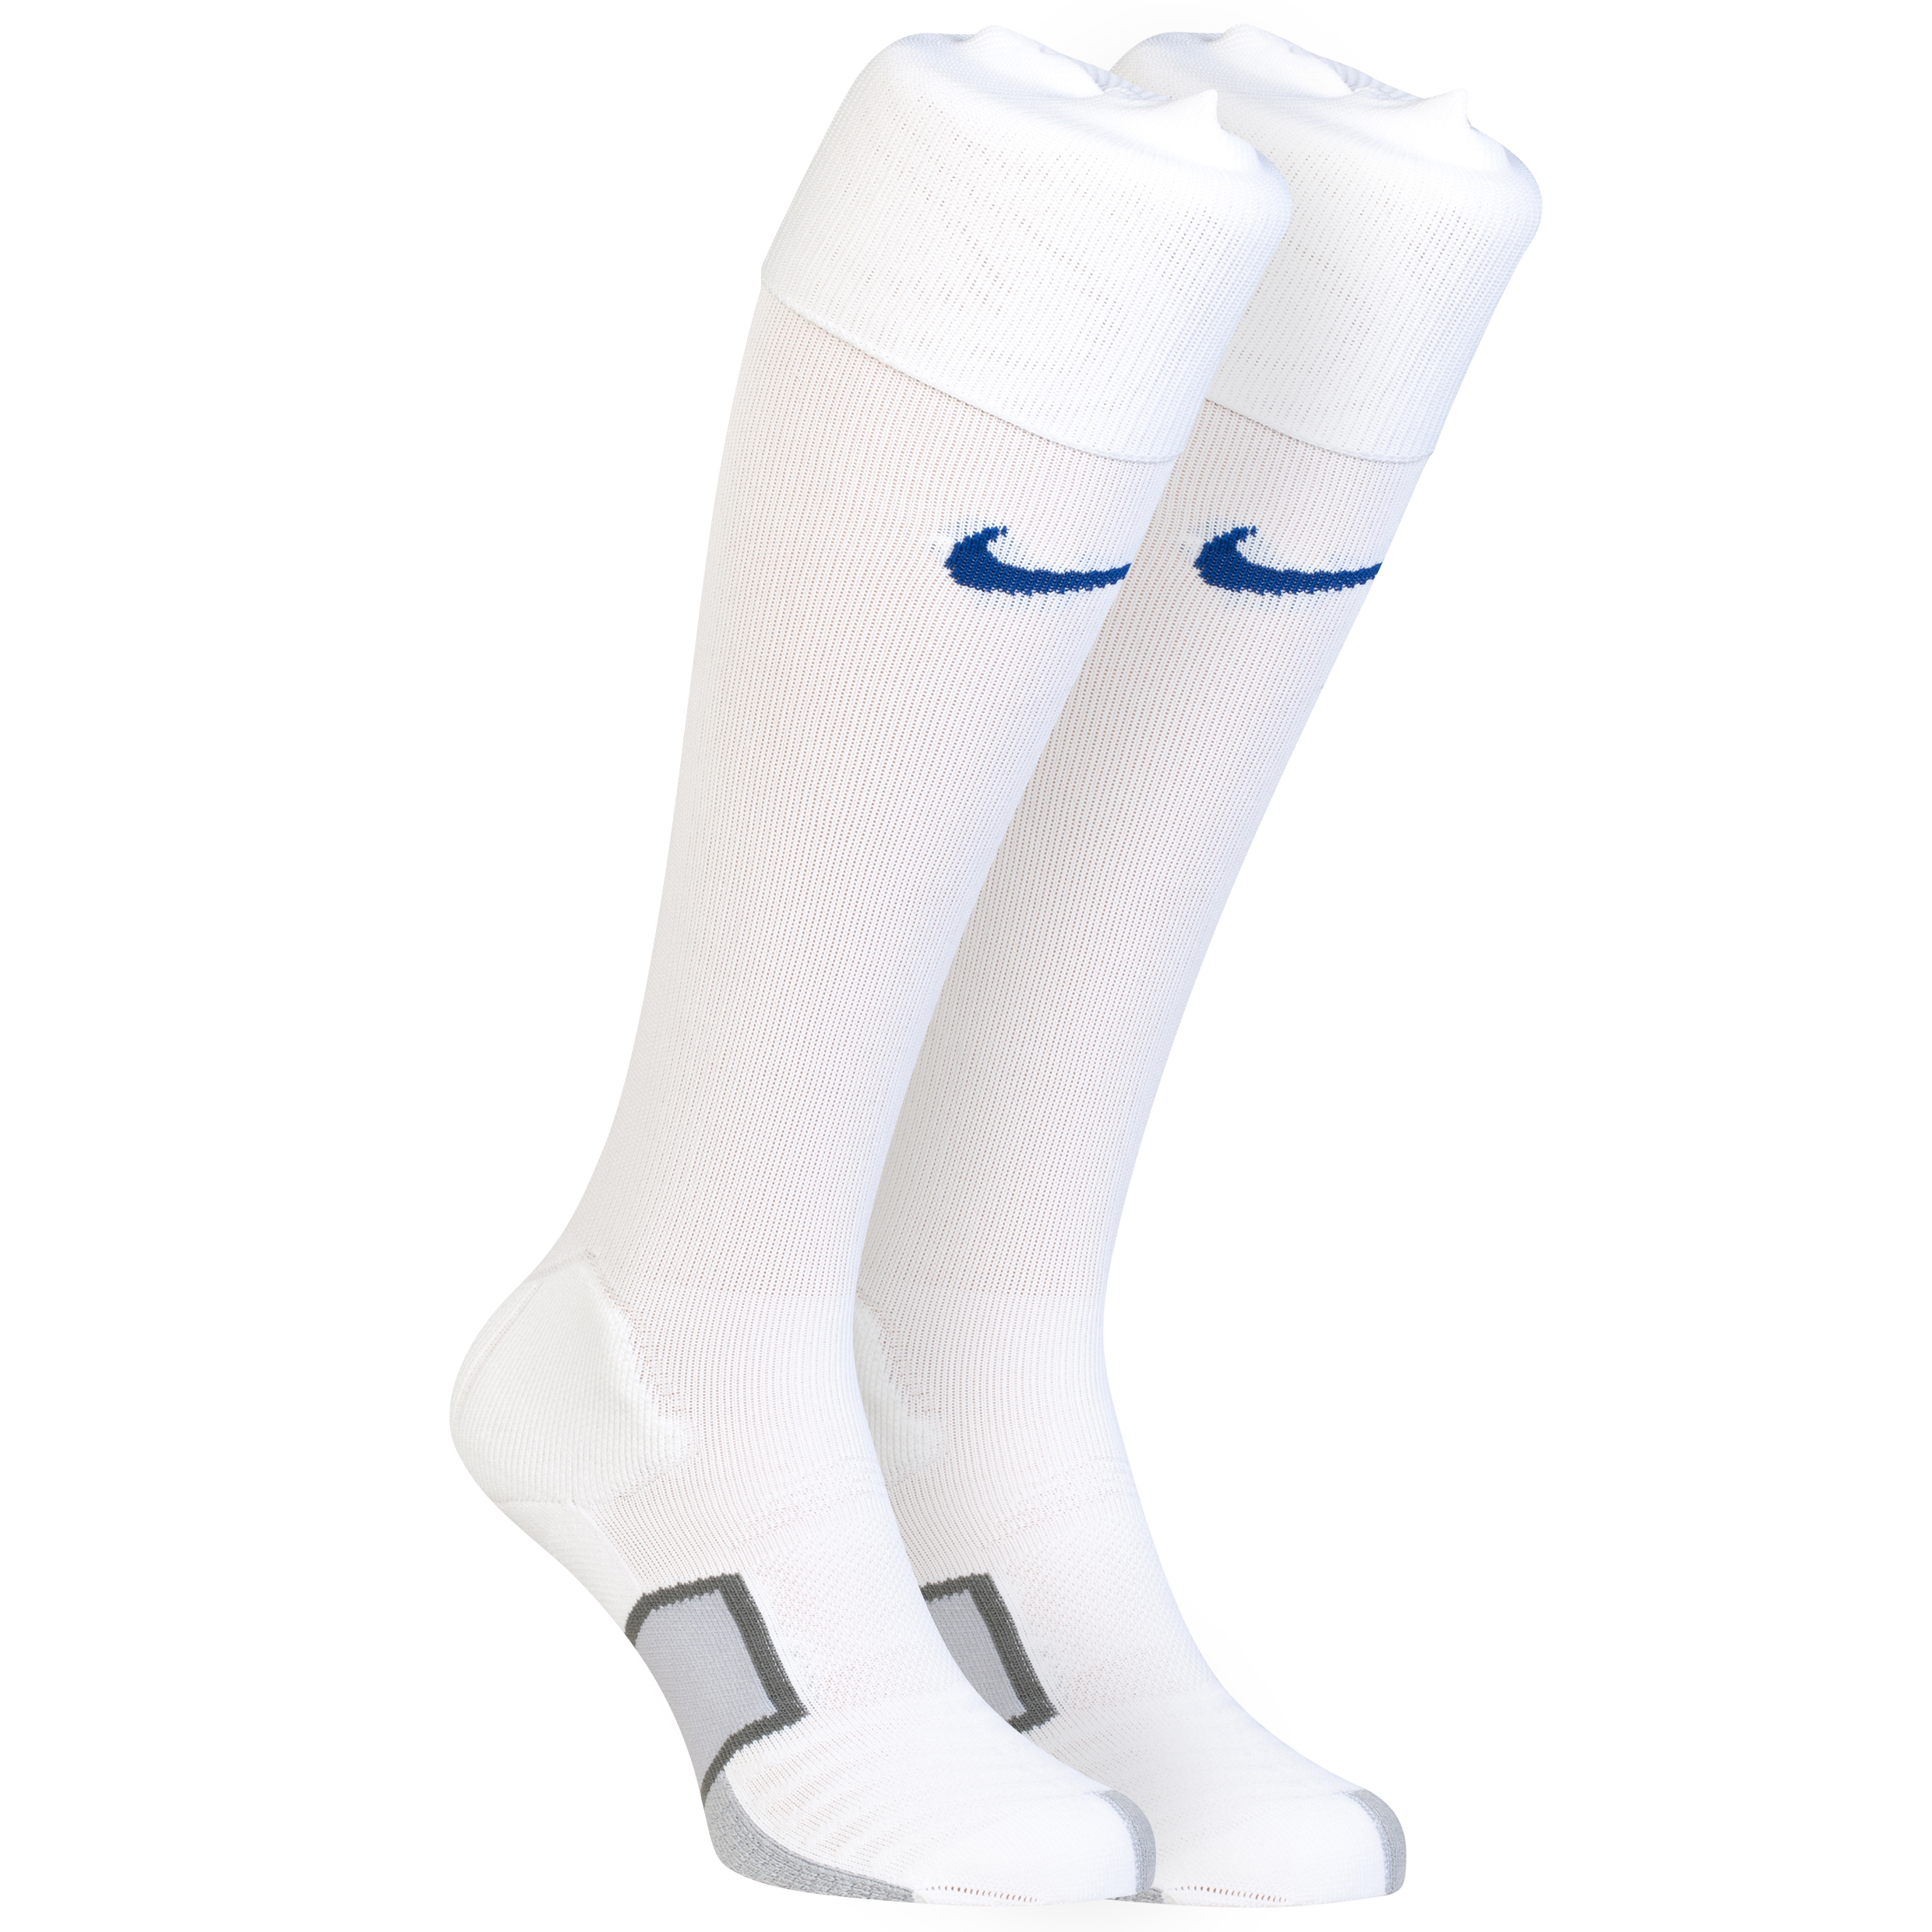 England Home Socks 2014/15 White